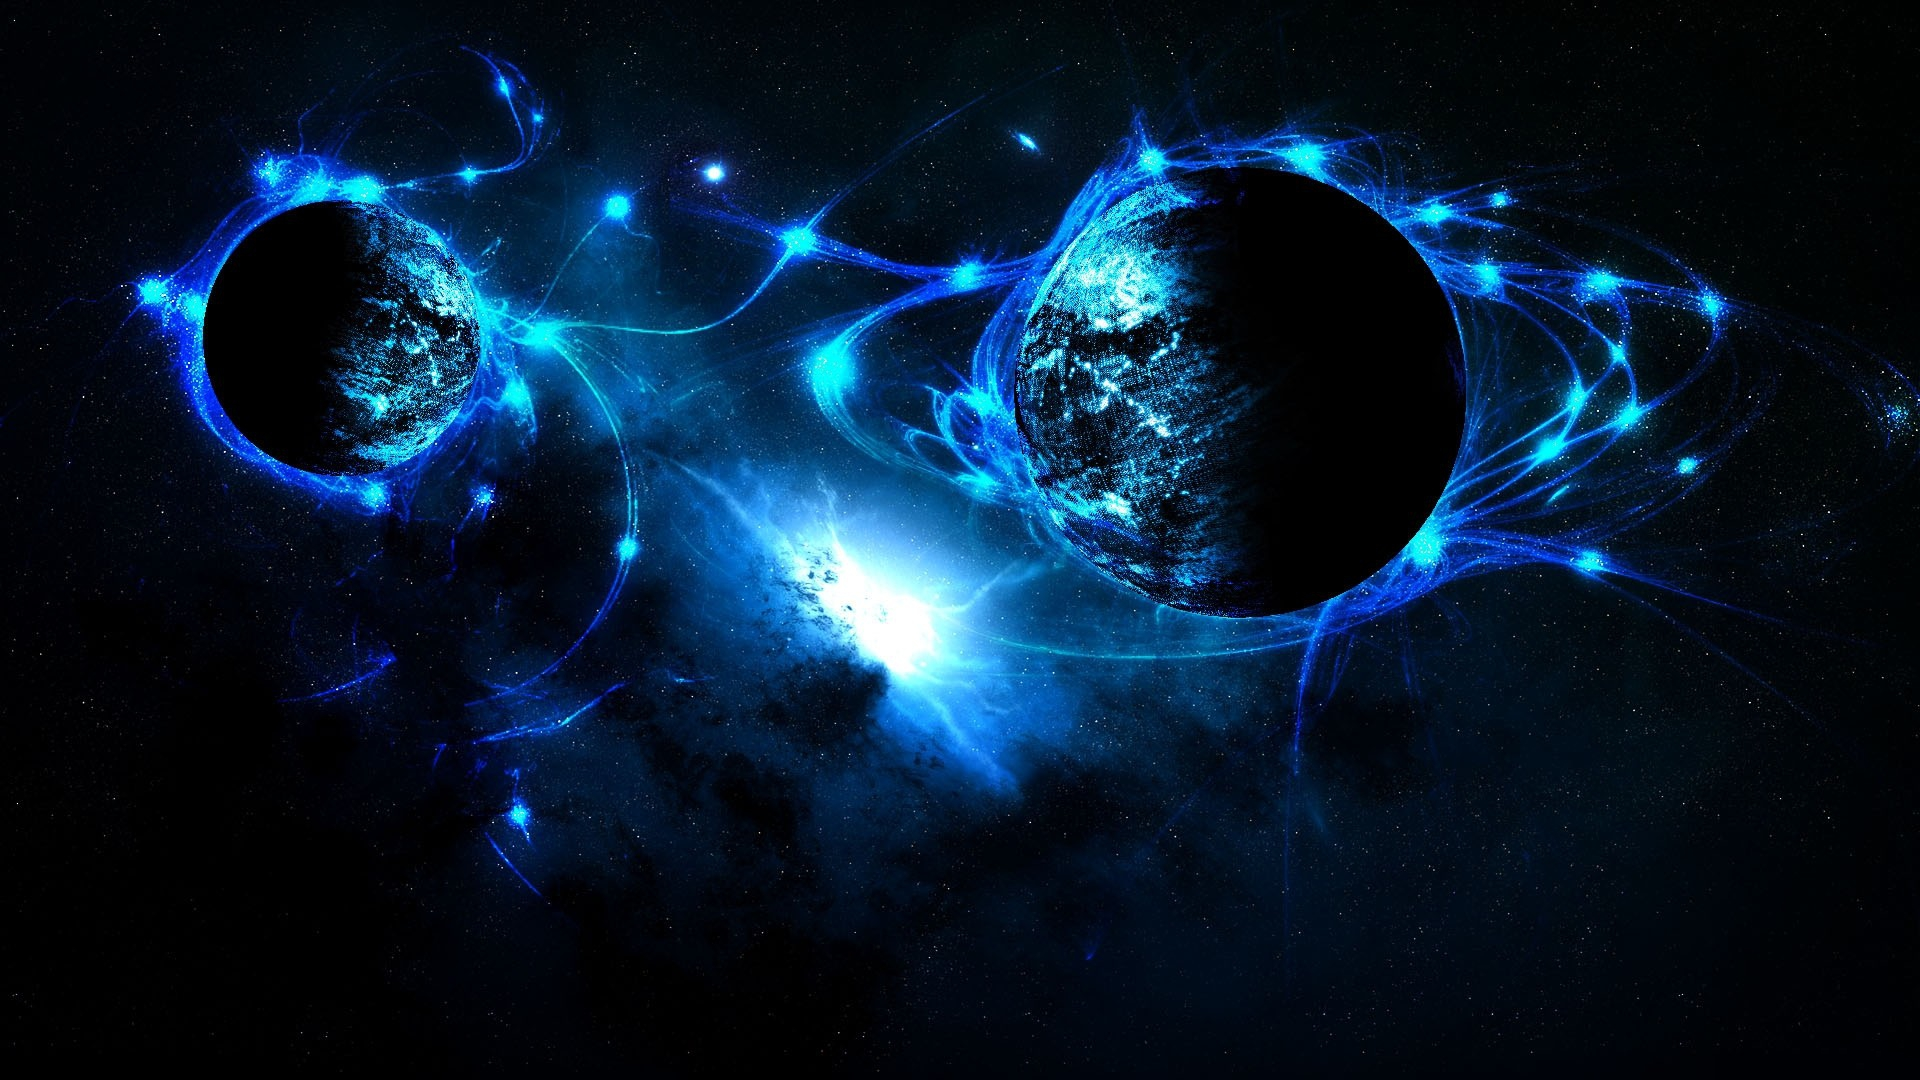 Sci fi outer space planets stars wallpaper 1920x1080 38861 1920x1080